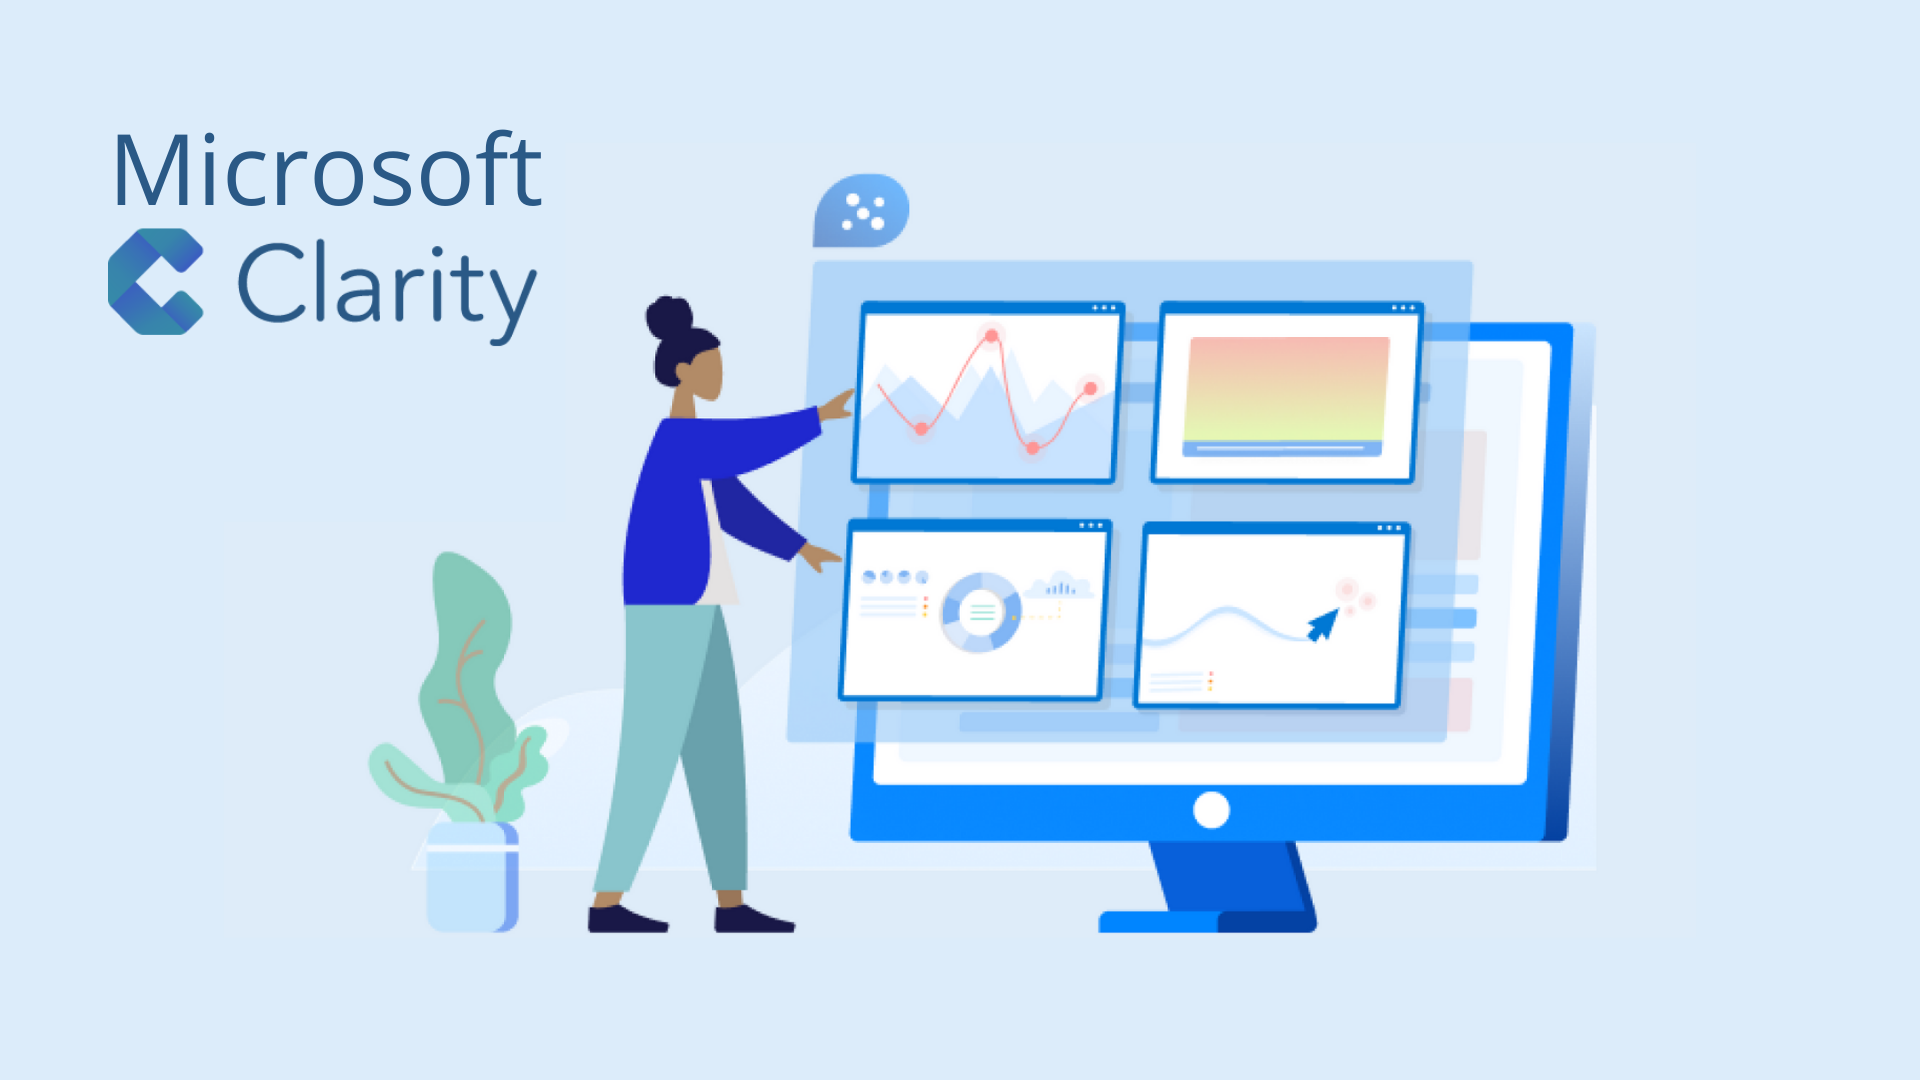 What Is Microsoft Clarity?